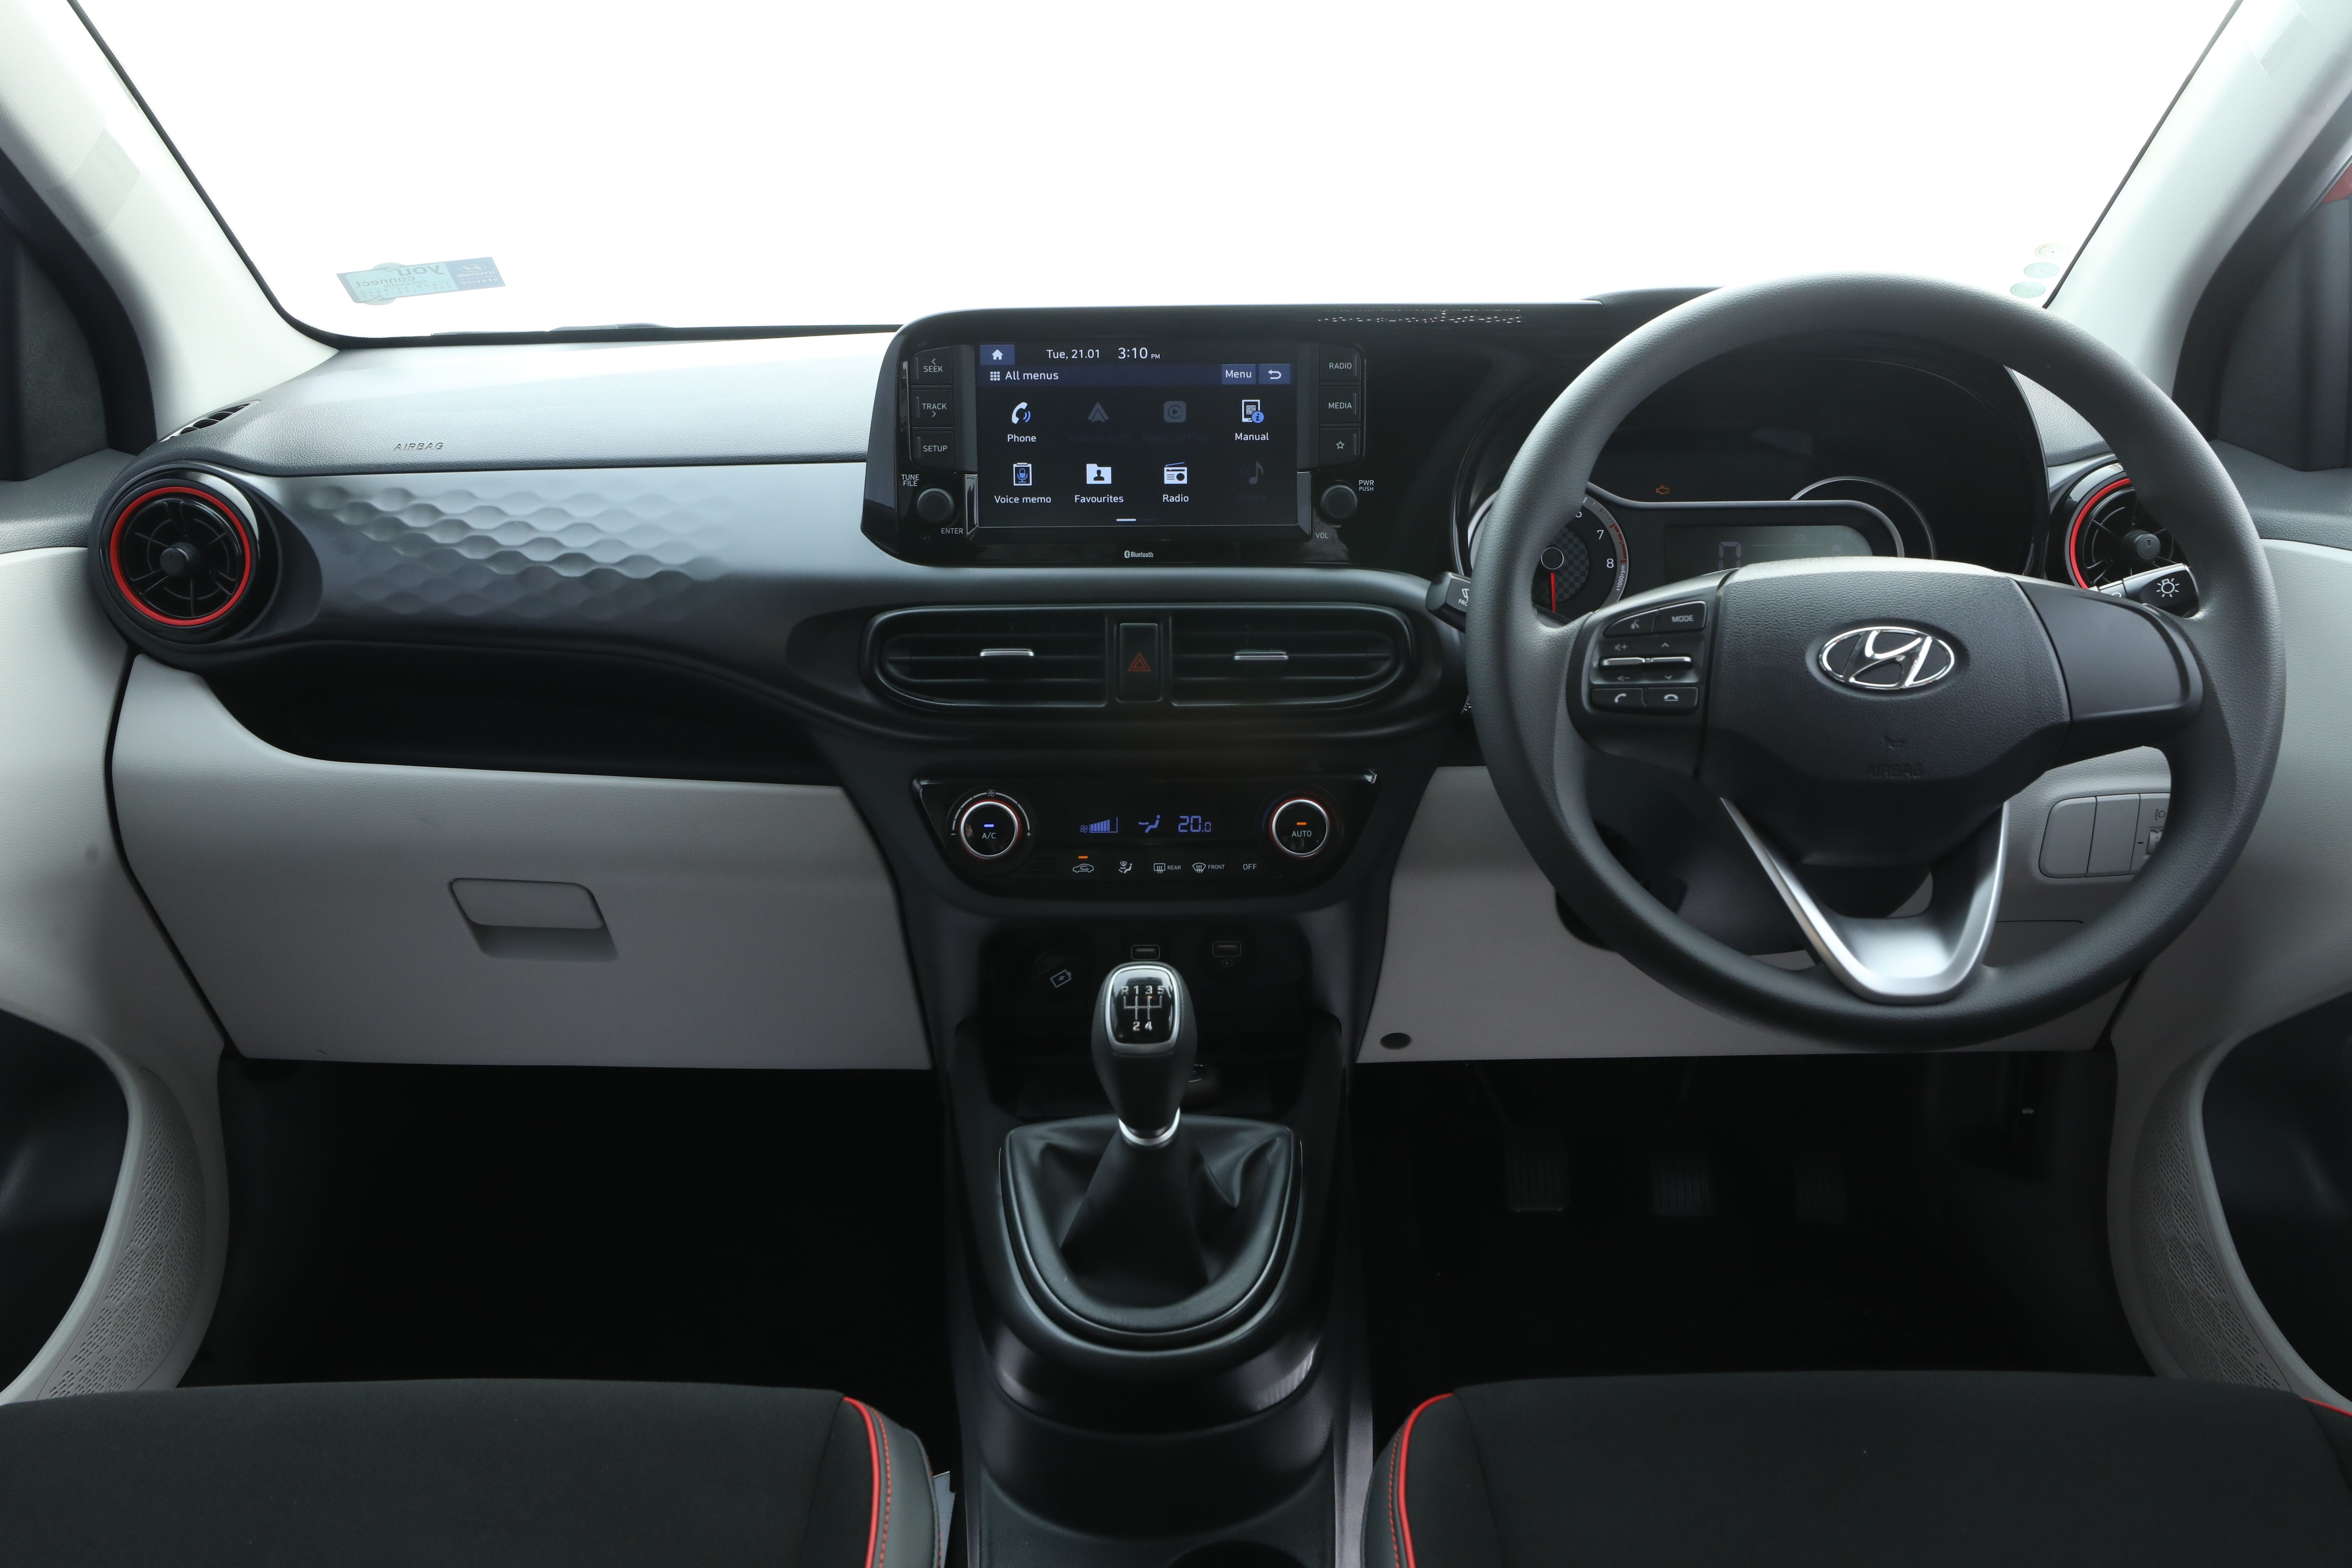 The cabin of the Aura gets an all-black treatment in the turbo version while the other versions feature a beige colour theme. There is a 20.25 cm touchscreen and a 13.46 cm digital speedometer with Multi Information Display.